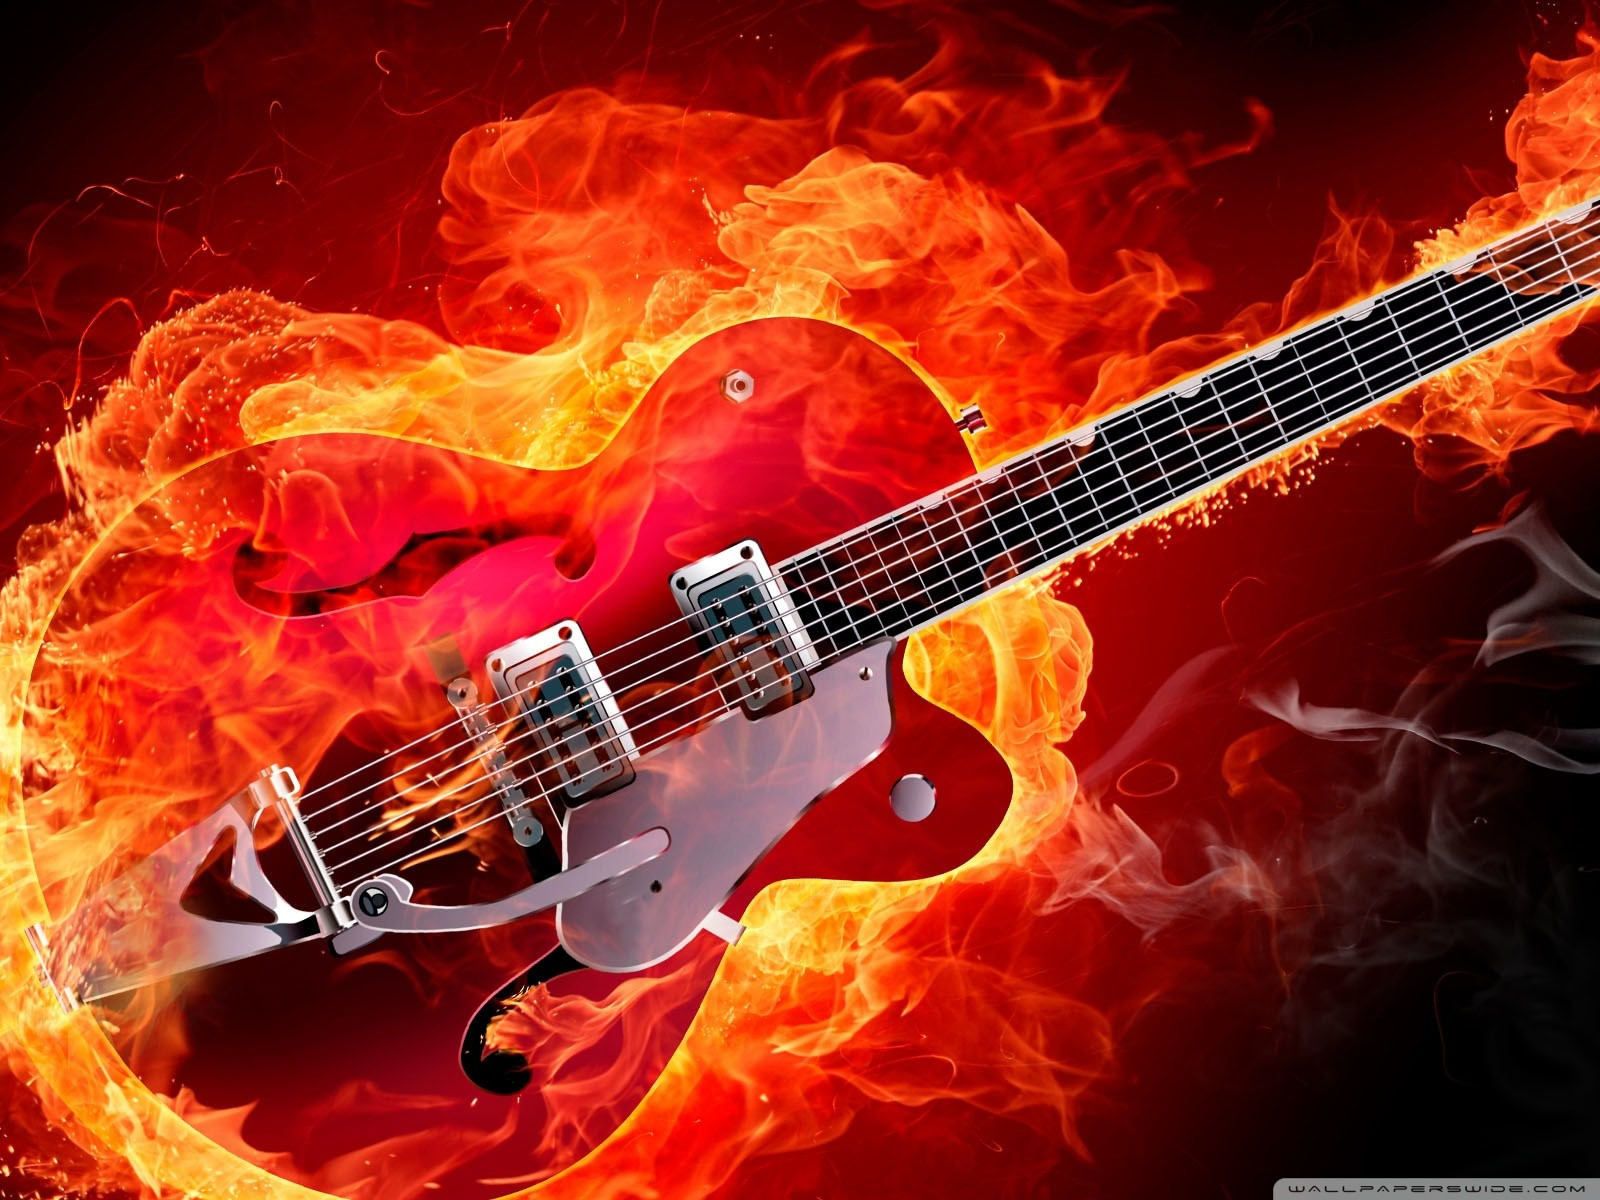 Free Rockabilly Electric Guitar on Fire phone wallpaper by gjlovers